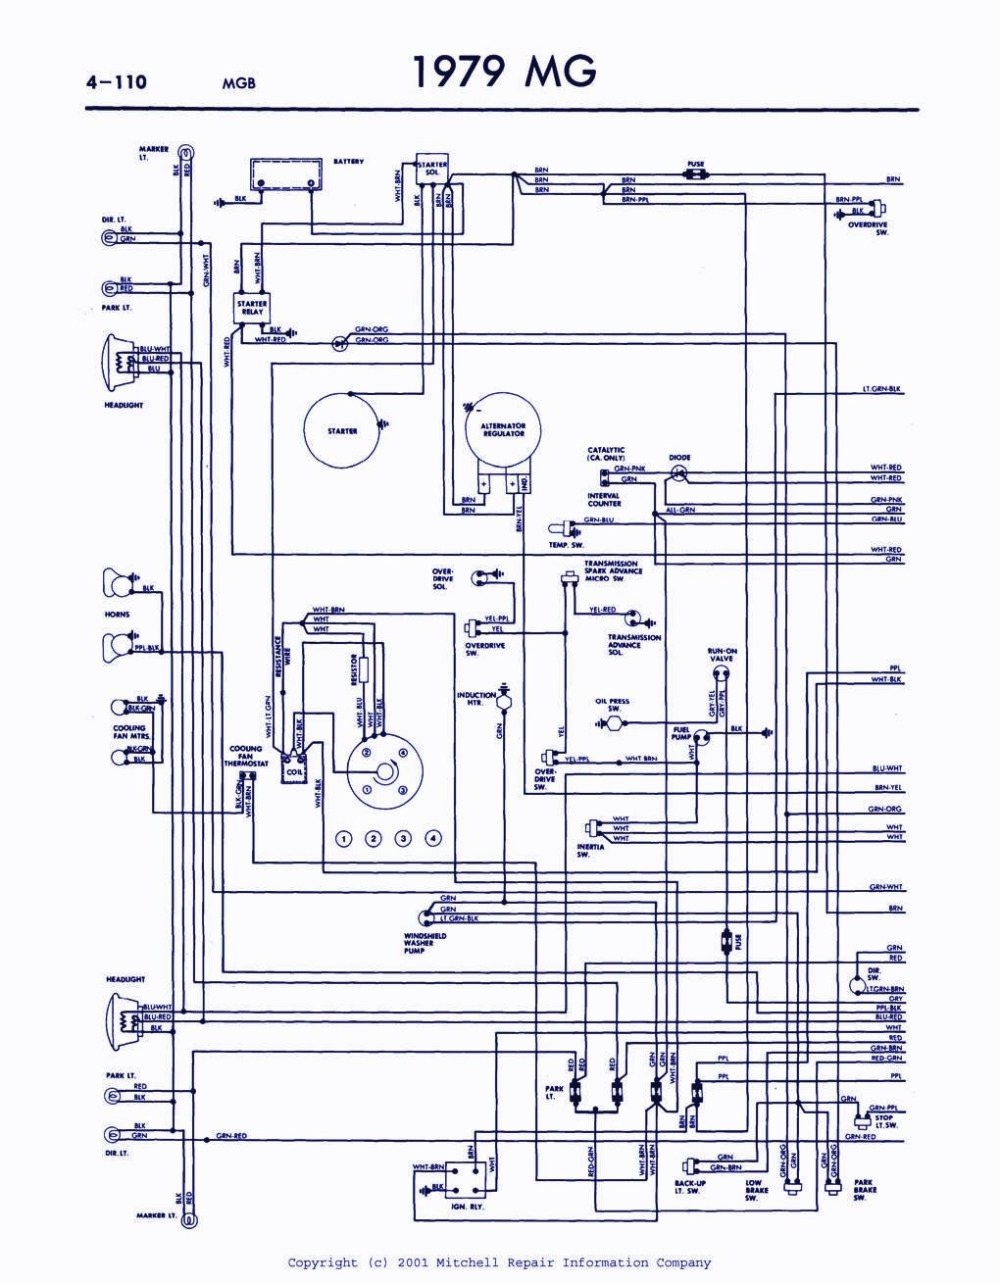 medium resolution of 79 mg midget wiring diagram data wiring diagram 1976 mg midget distributor wiring diagram